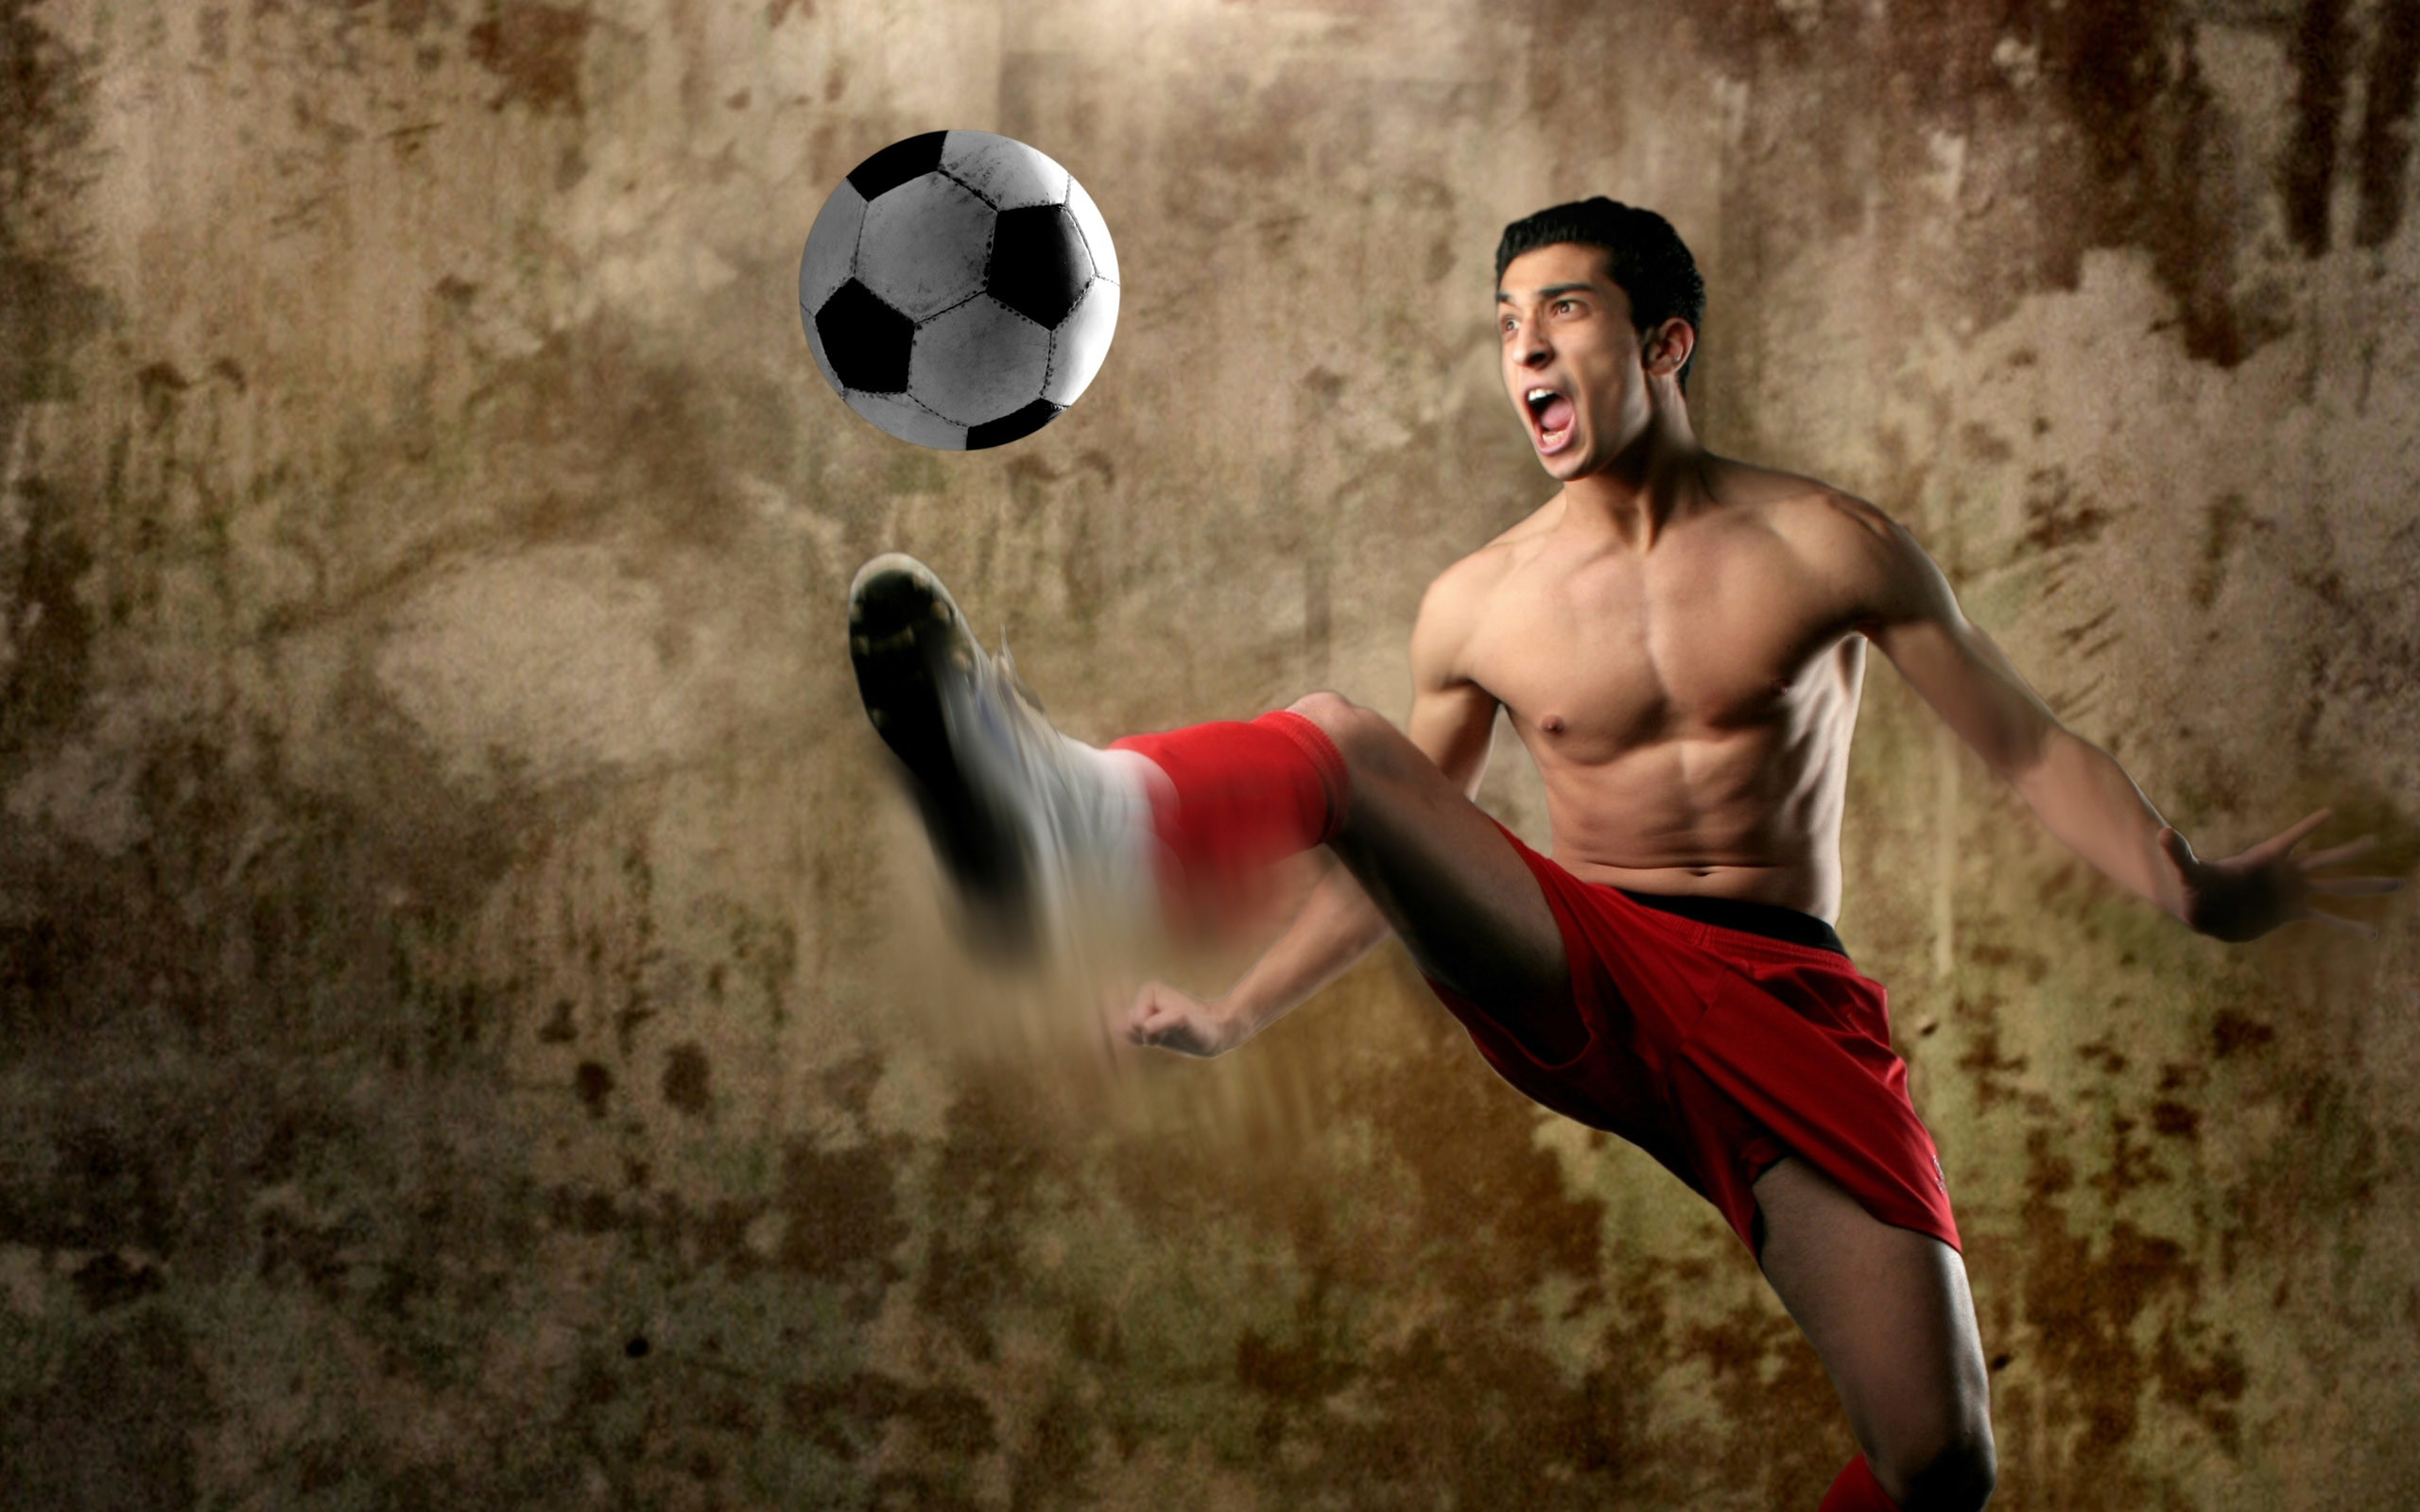 2560x1600 Cool Soccer Pictures HD Wallpapers Backgrounds of Your Choice